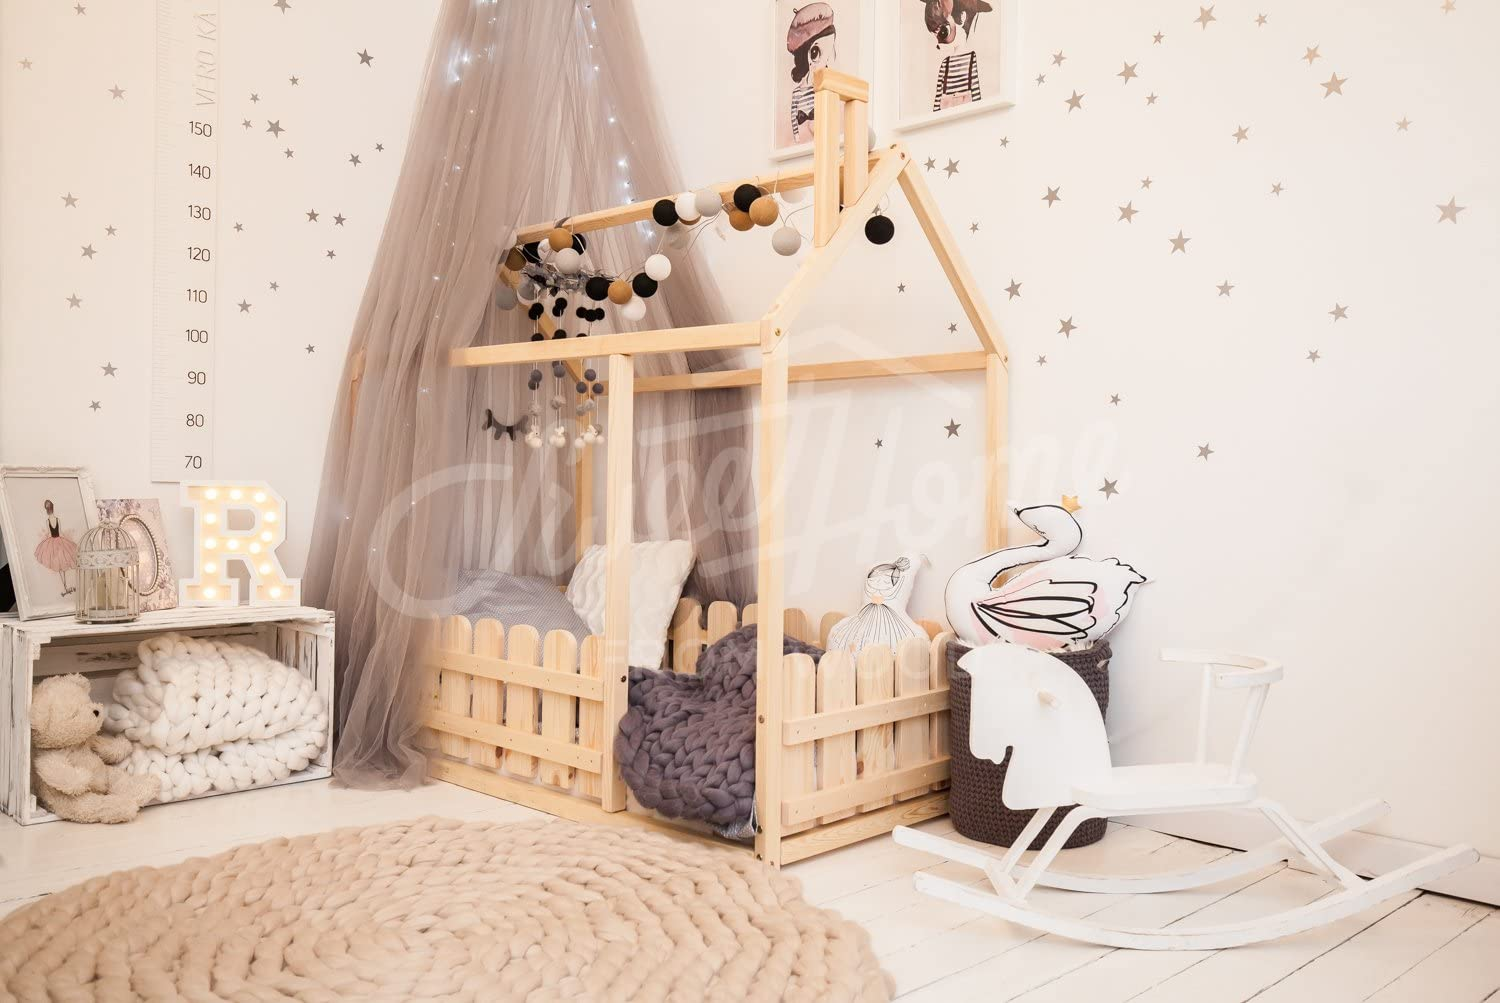 135x190cm Sweet Home from Wood Montessori house bed floor bed